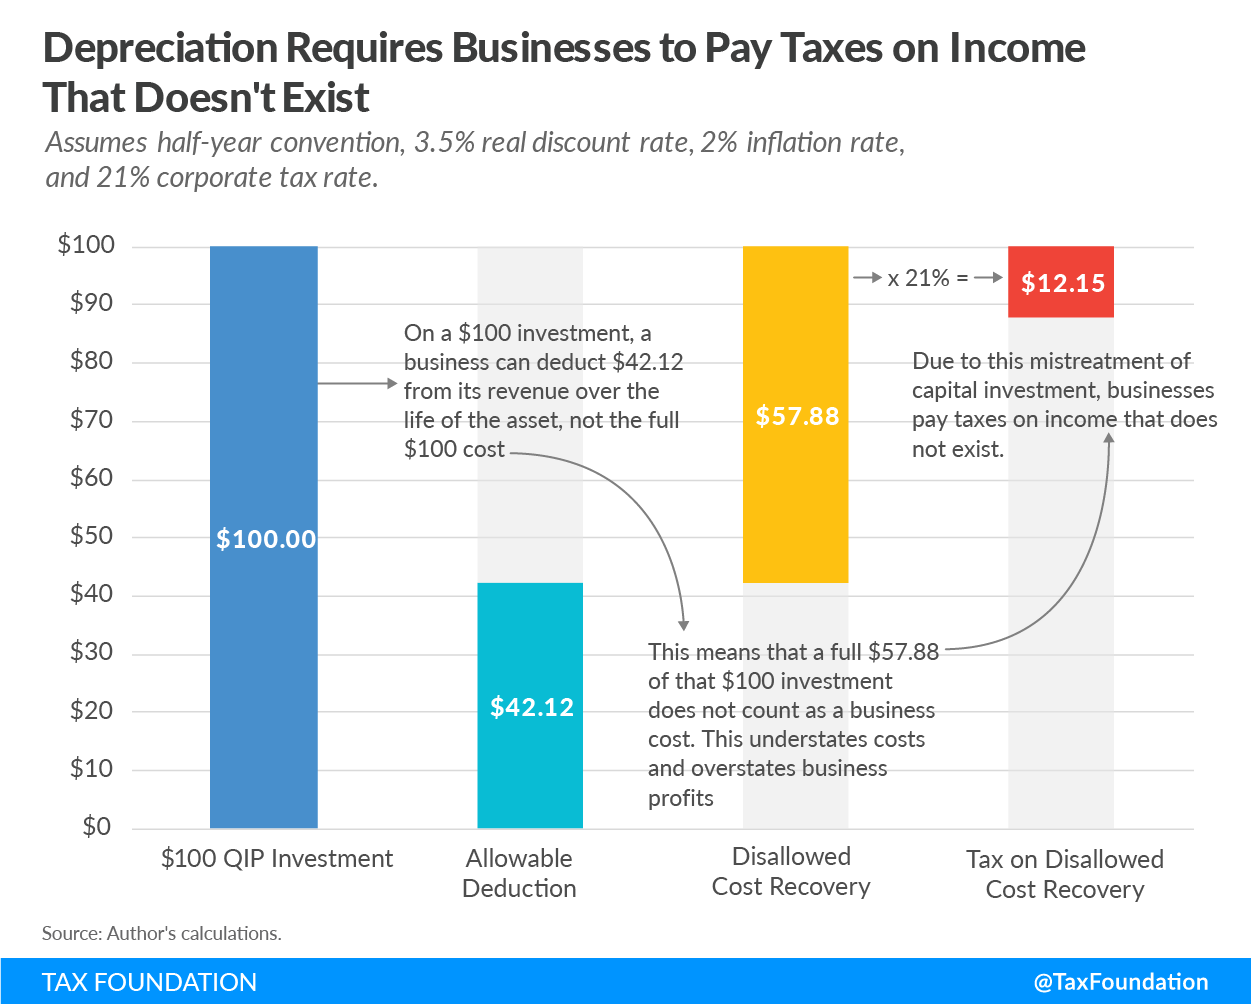 Depreciation Requires Businesses to Pay Taxes on Income That Doesn't Exist